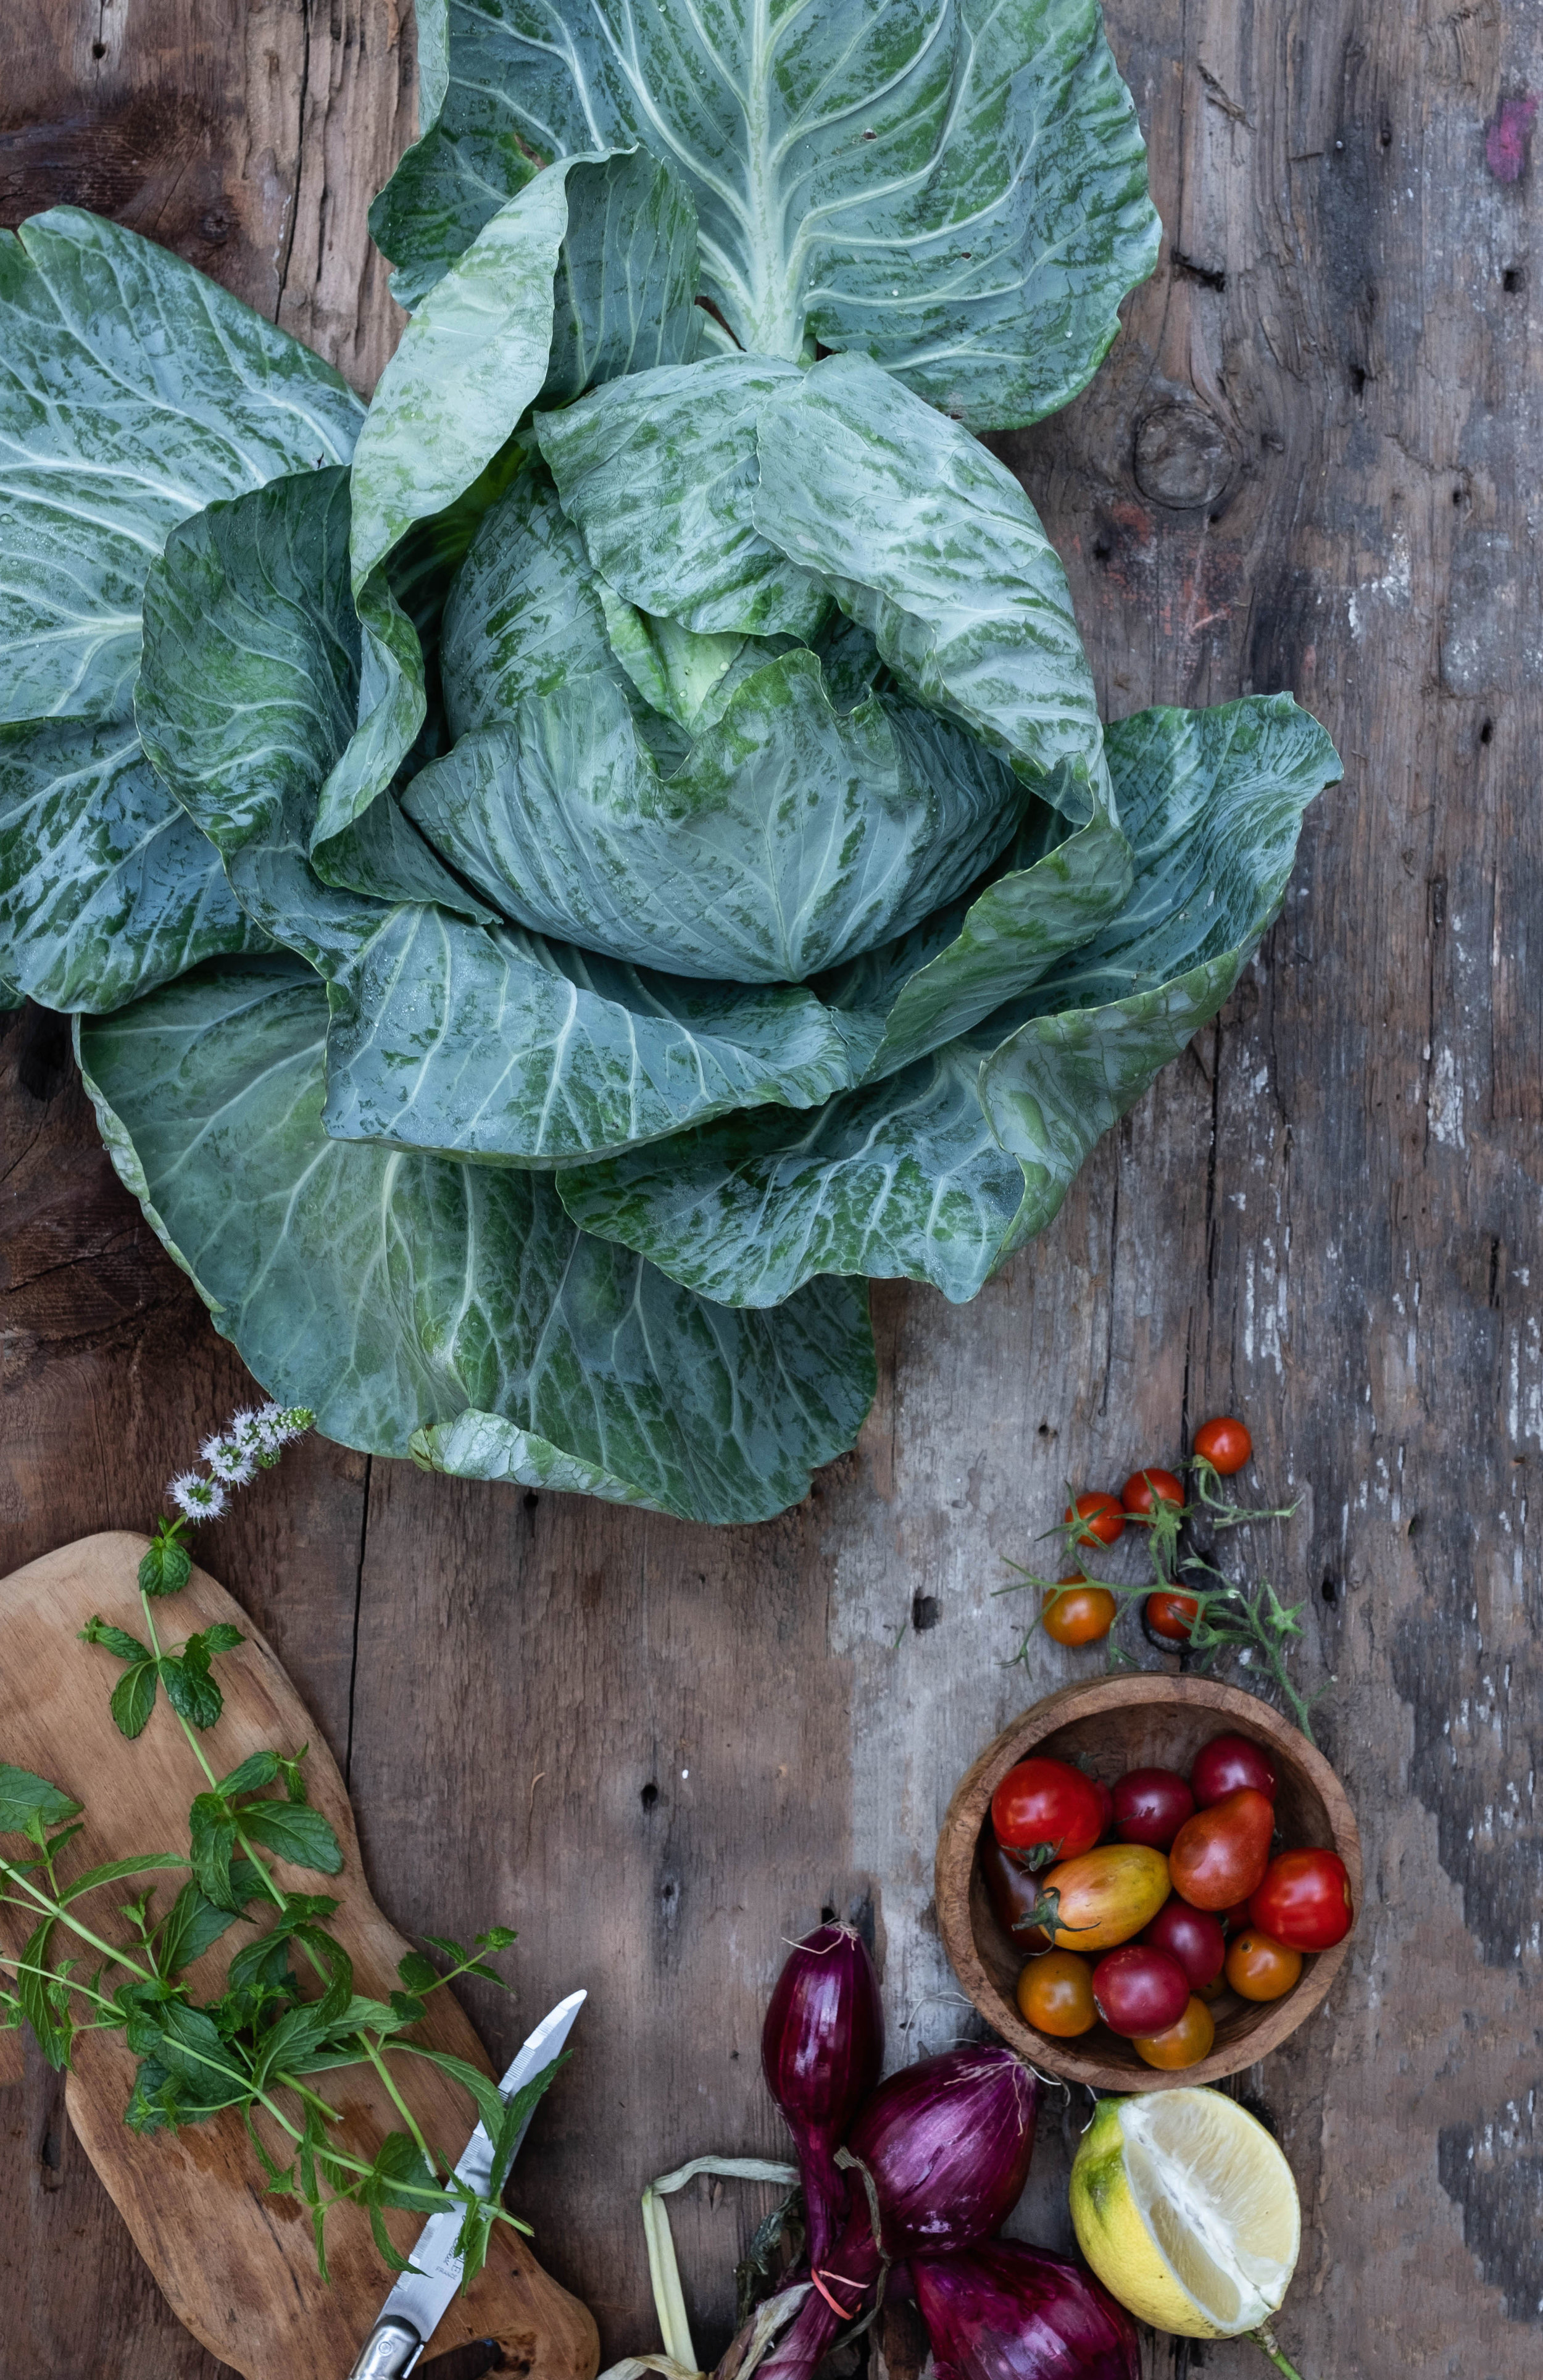 At the ROSE & IVY Journal Market | Cabbage + Cabbage & Tomato Tabouleh